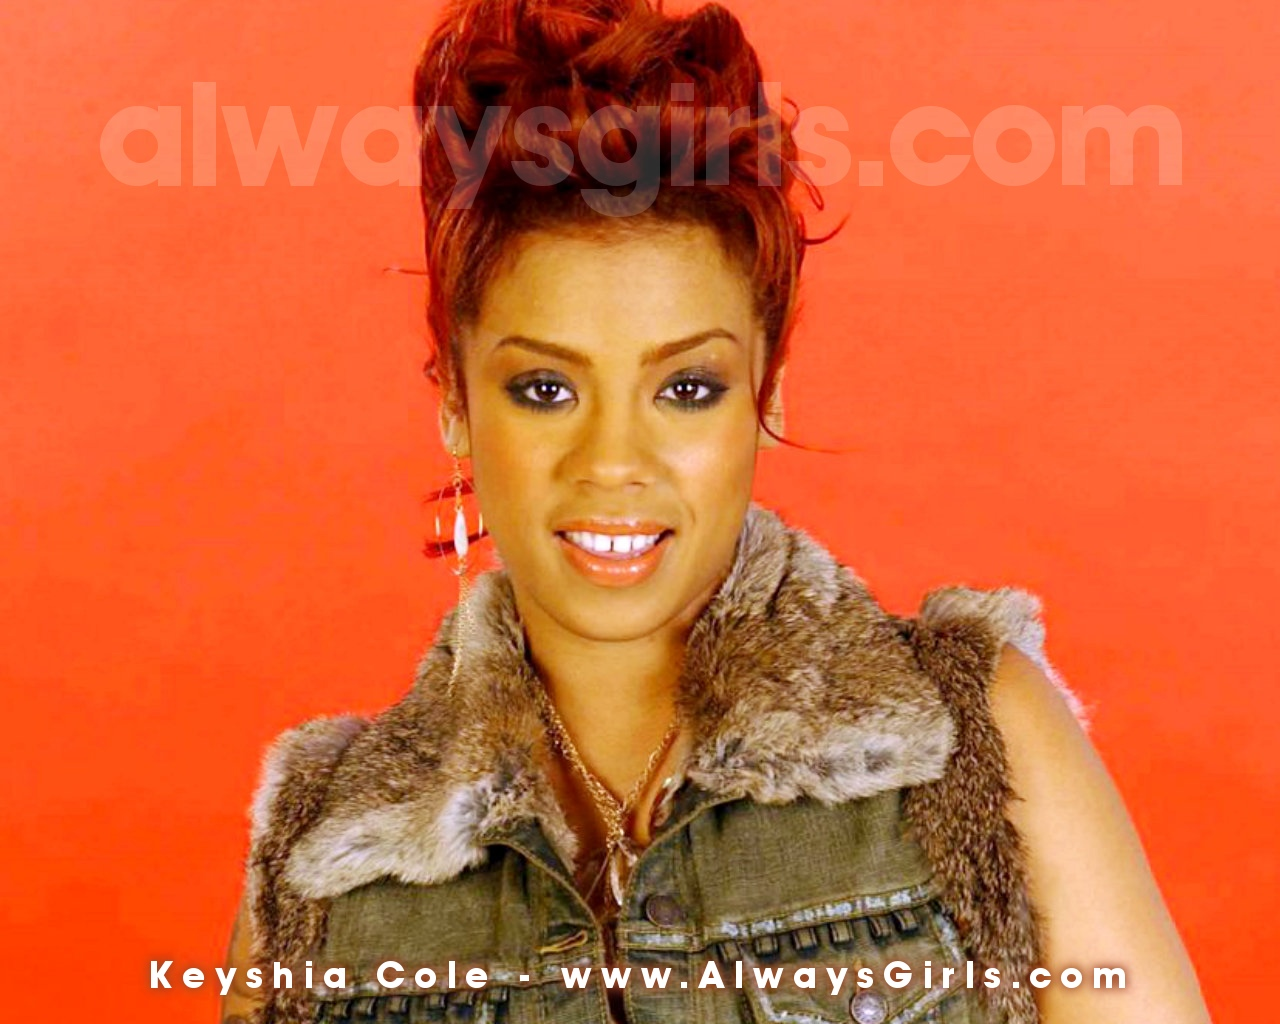 Keyshia Cole Hairstyle Trends: Keyshia Cole Hairstyle Wallpapers